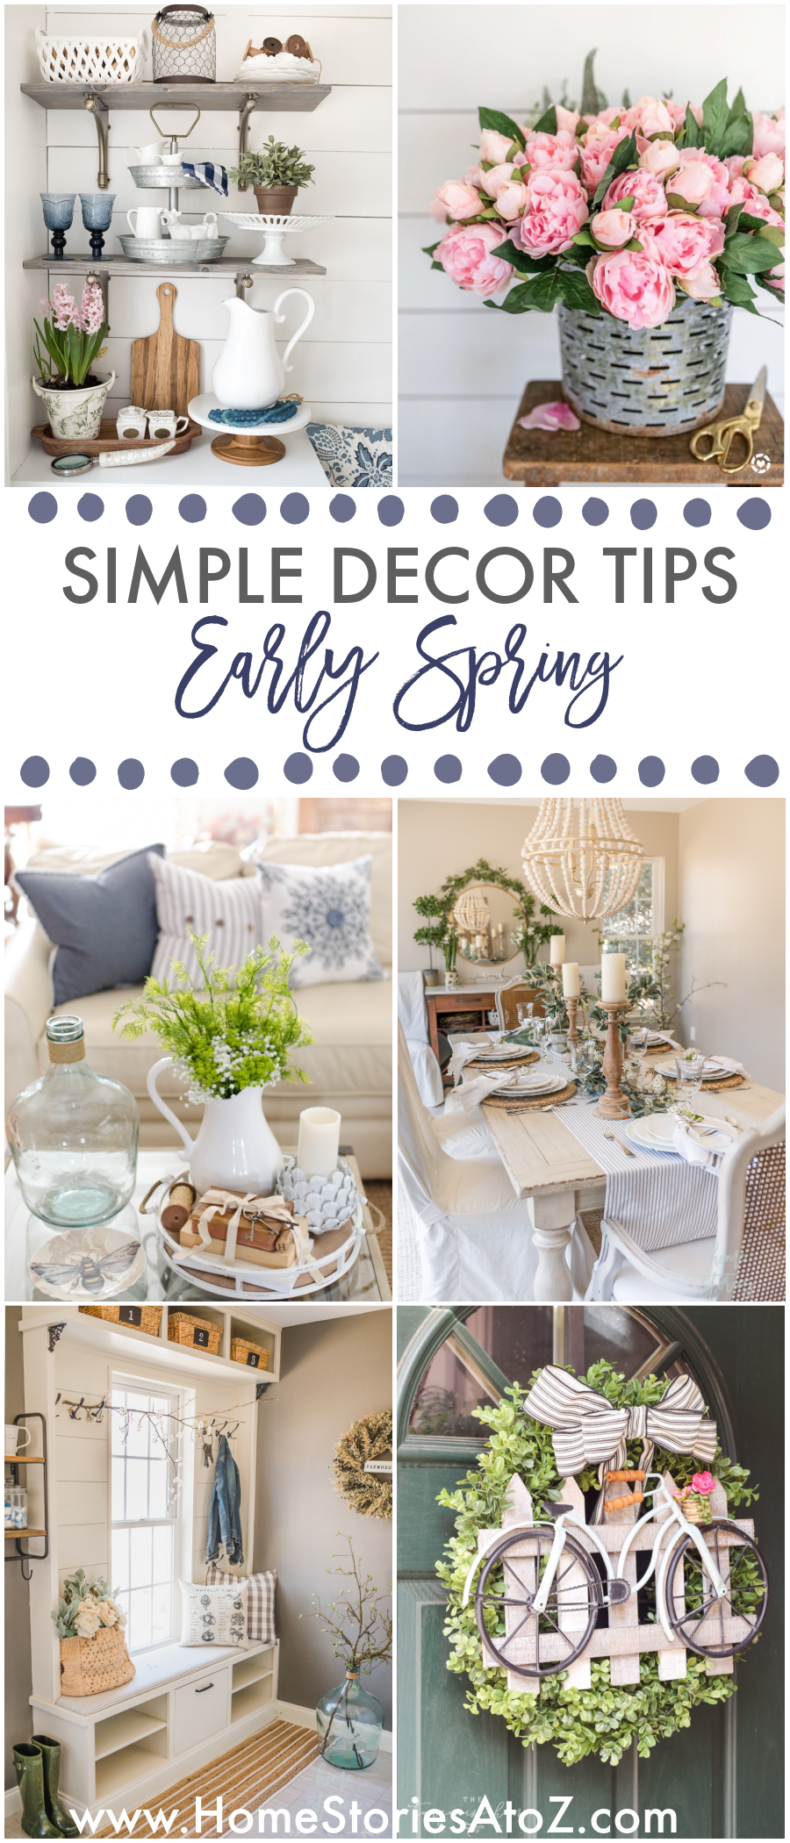 Early Spring Decor Tips - Home Stories A to Z